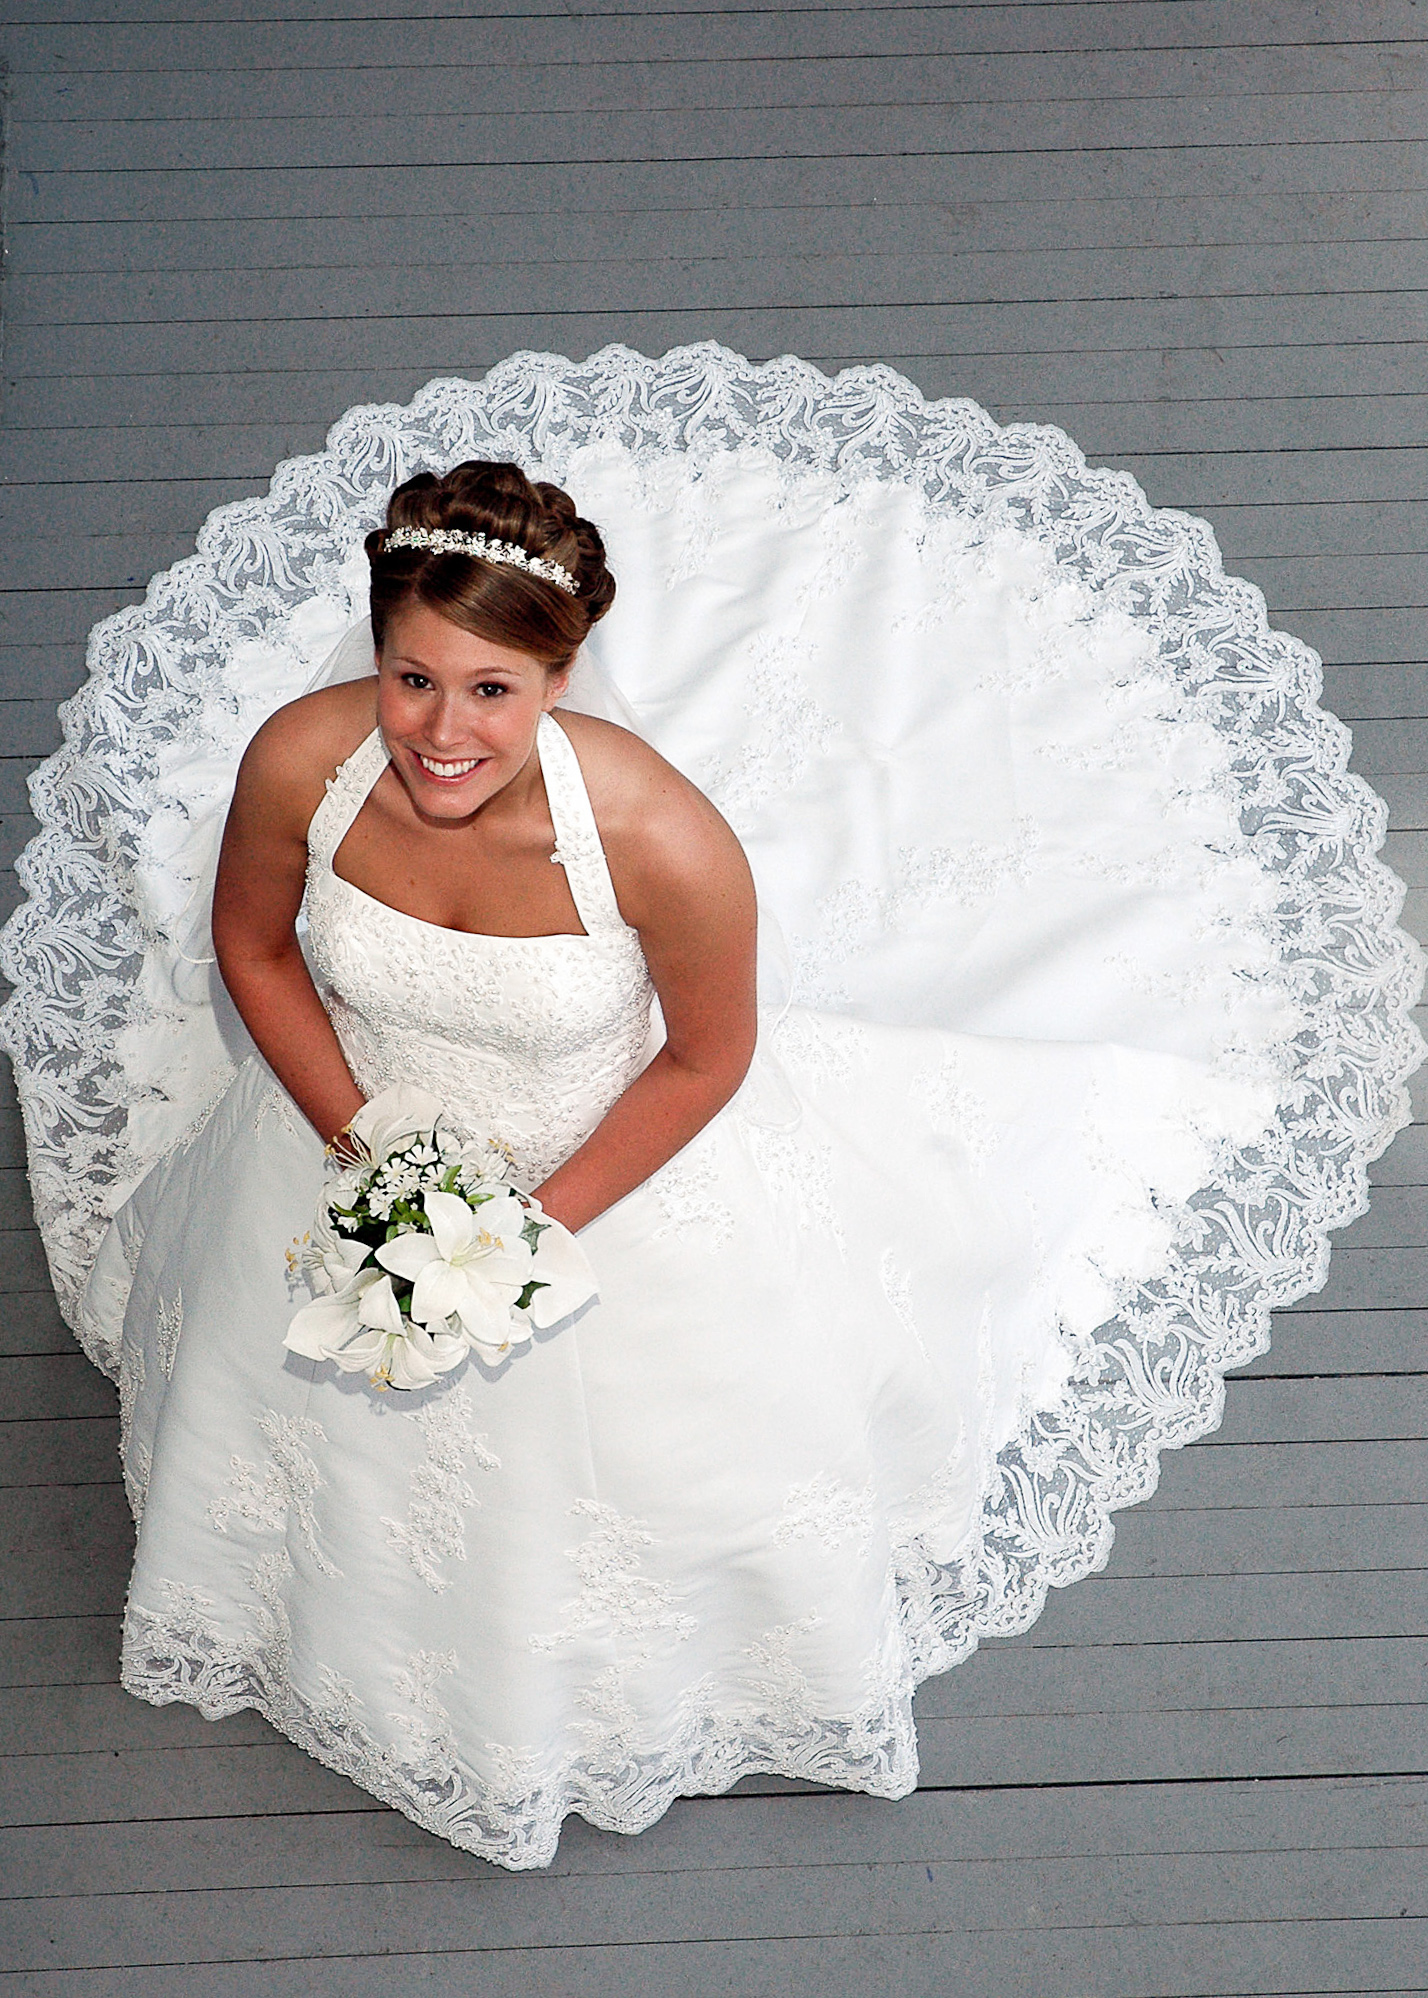 Bridal portrait at the Bellamy Mansion in Wilmington, NC.